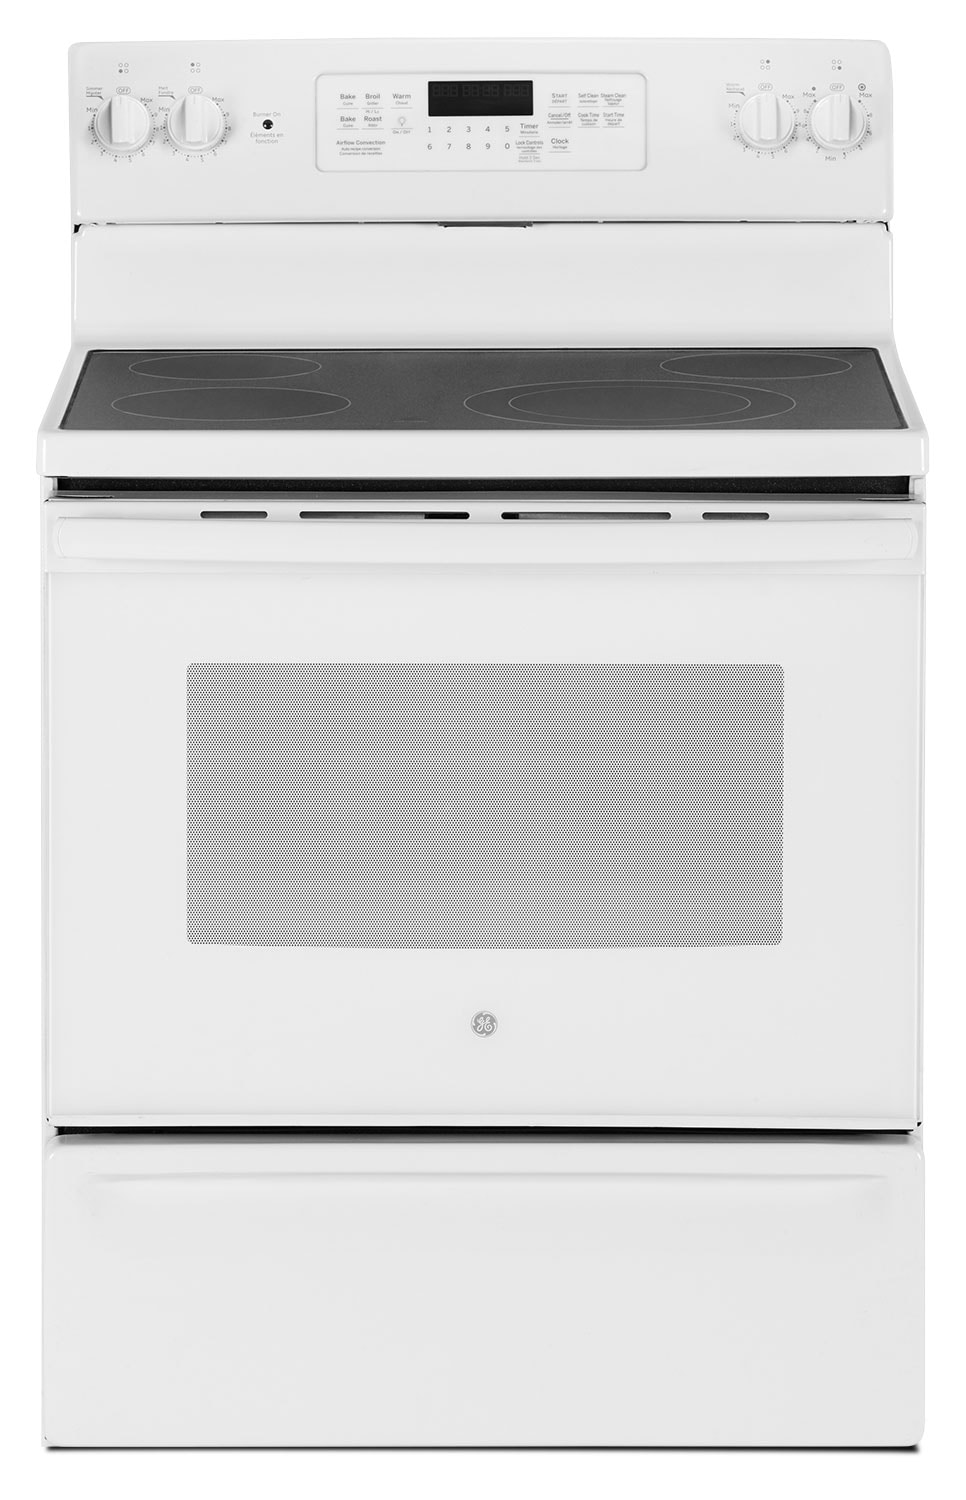 GE 5.0 Cu. Ft. Freestanding Electric Range – JCB830DKWW